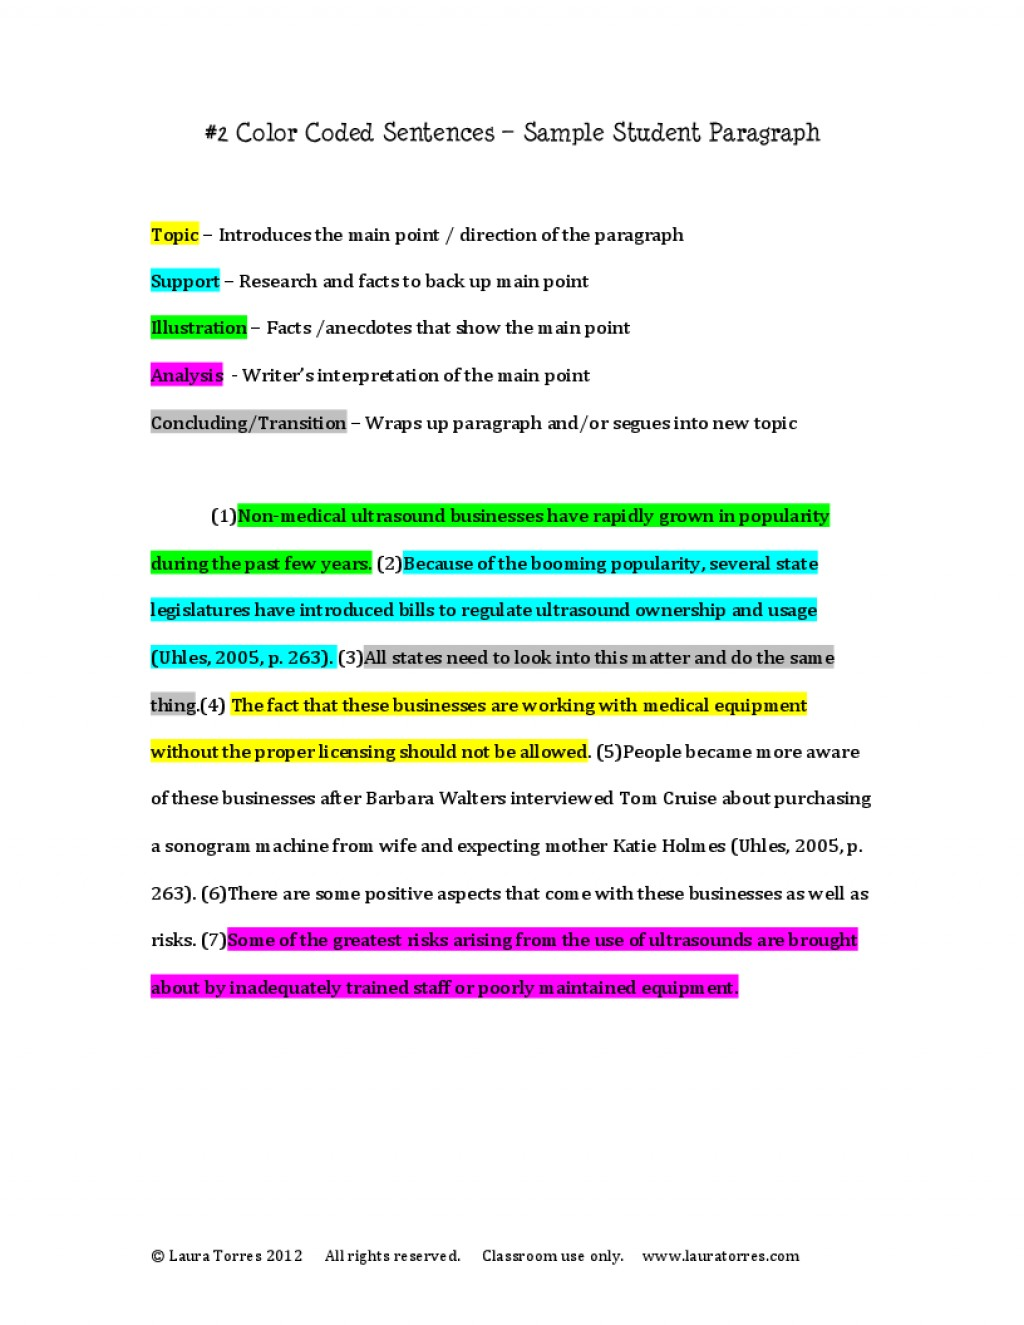 004 Essay Revisor Revising Paragraphs In Essays Lesson Plan Syllabuyco Revise L Magnificent Sas Large